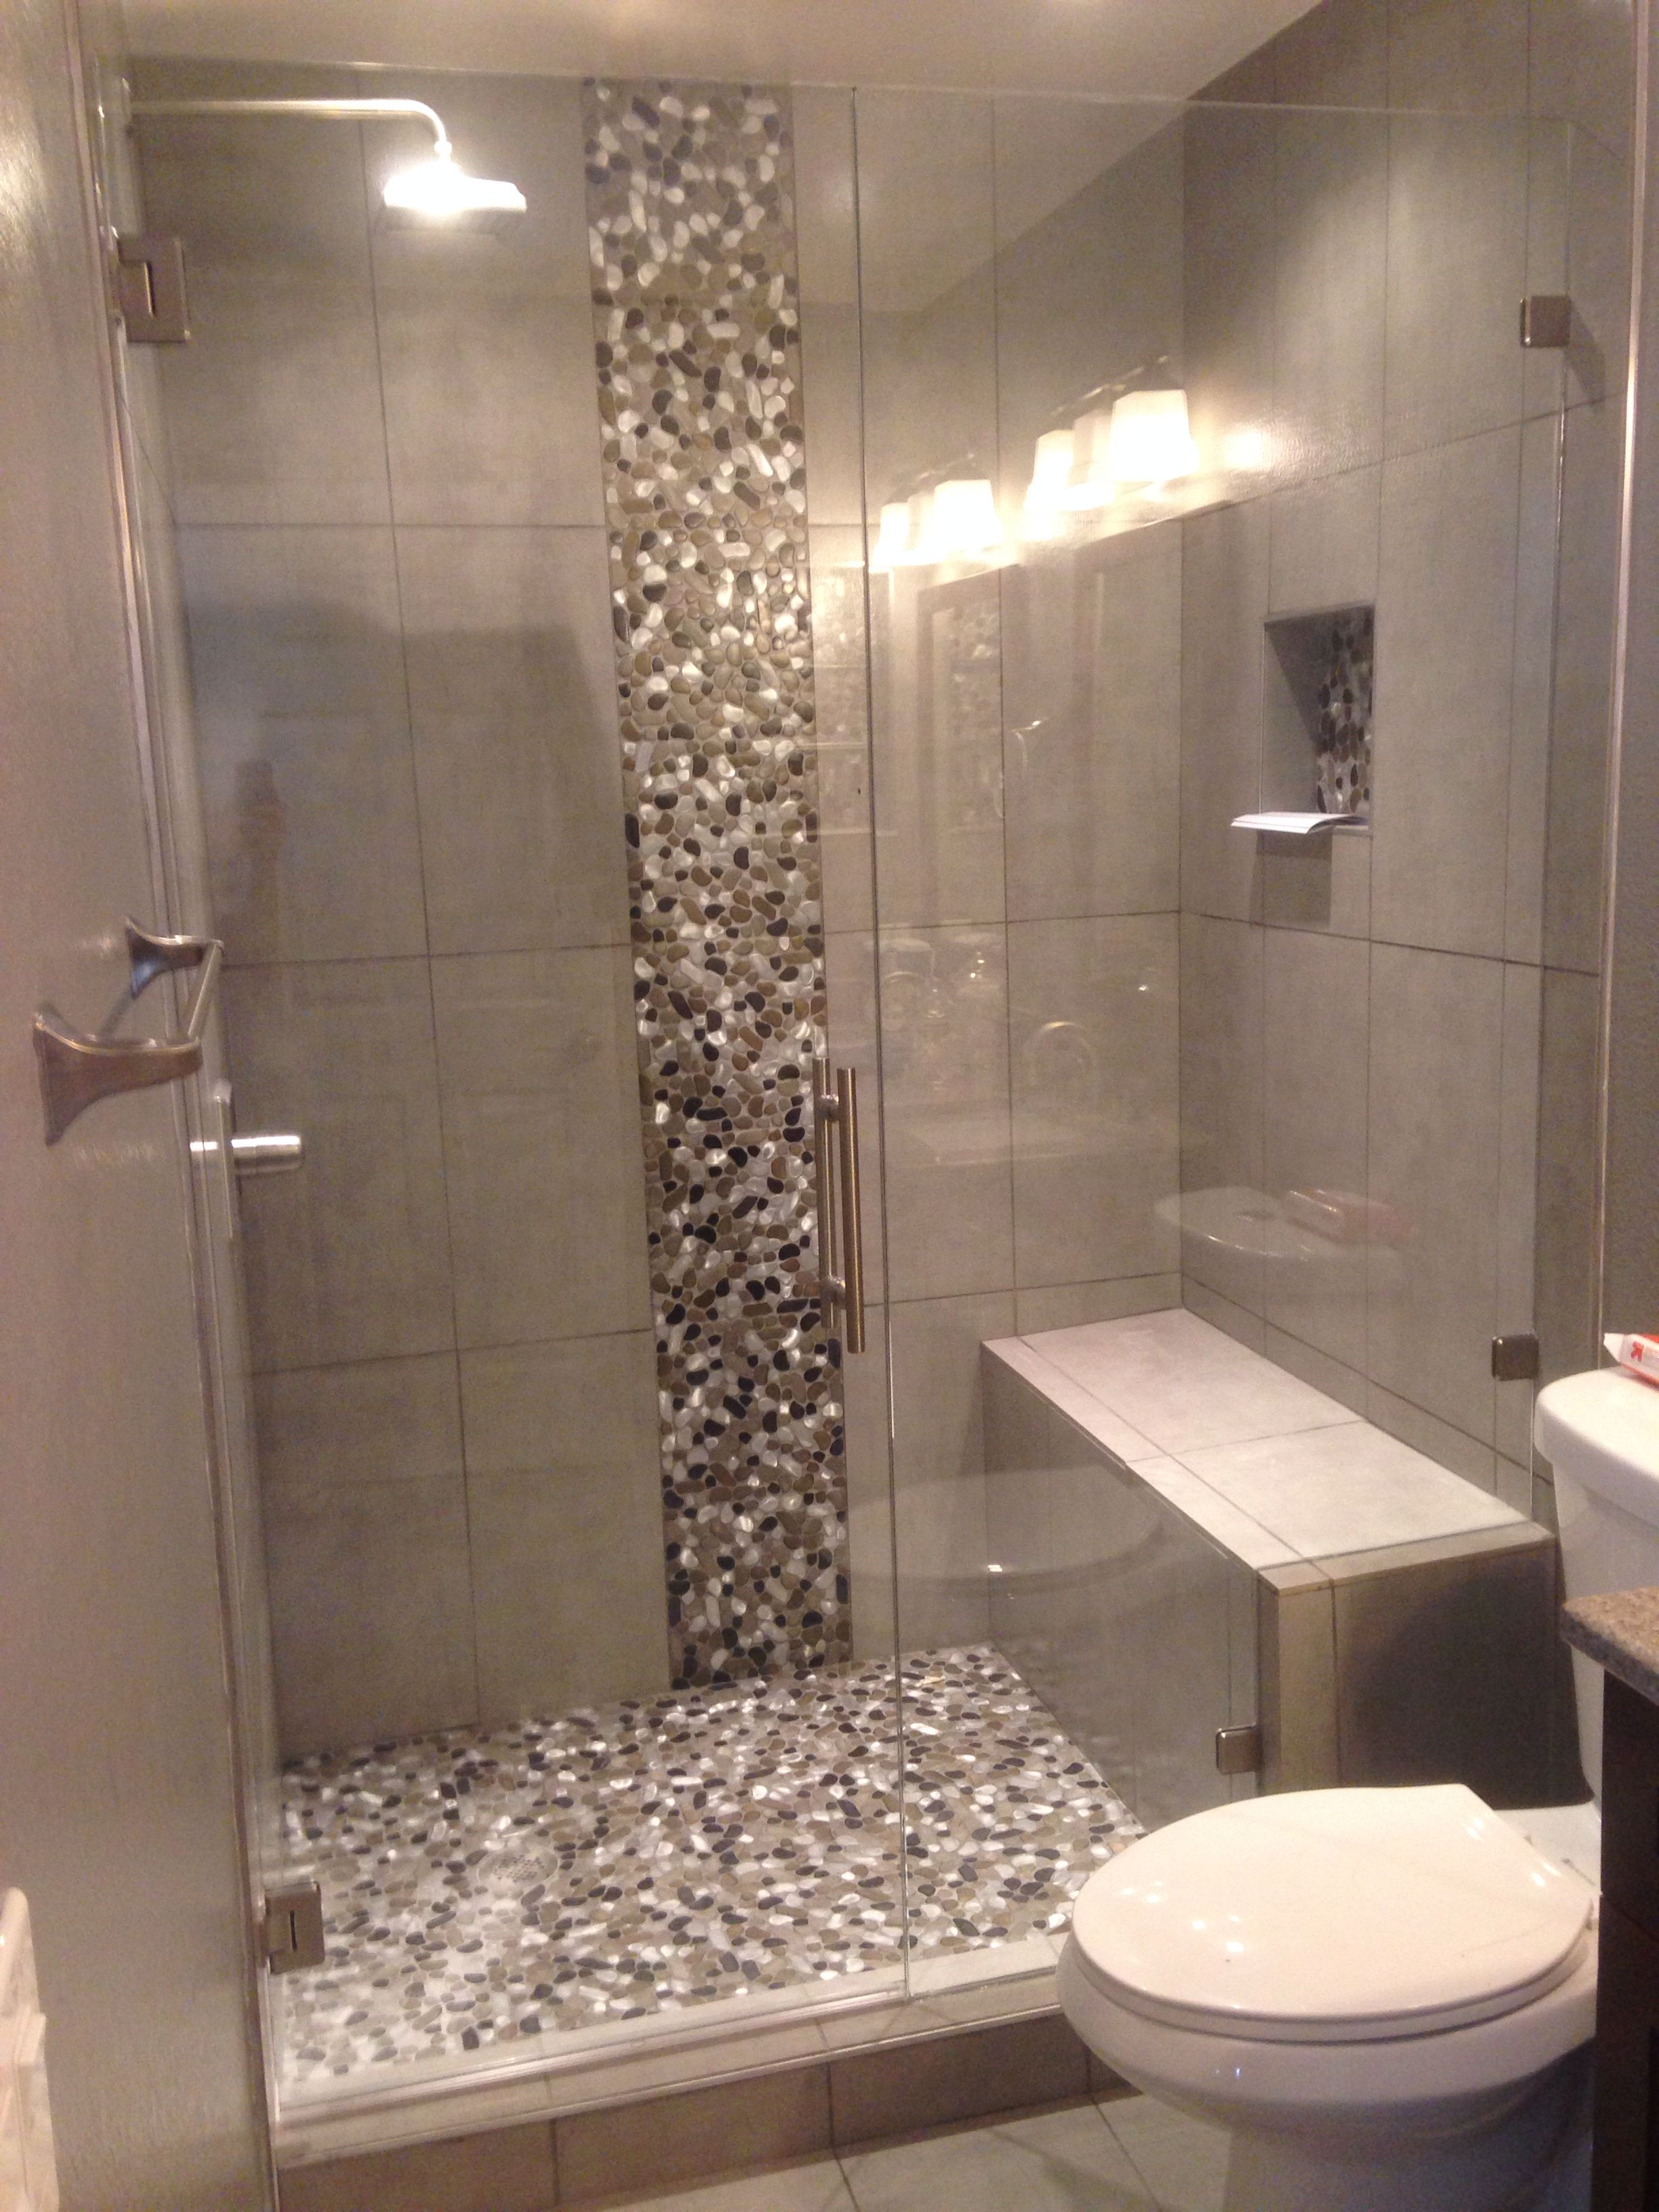 Completed Shower Door In Denver Colorado Bathroom Remodel